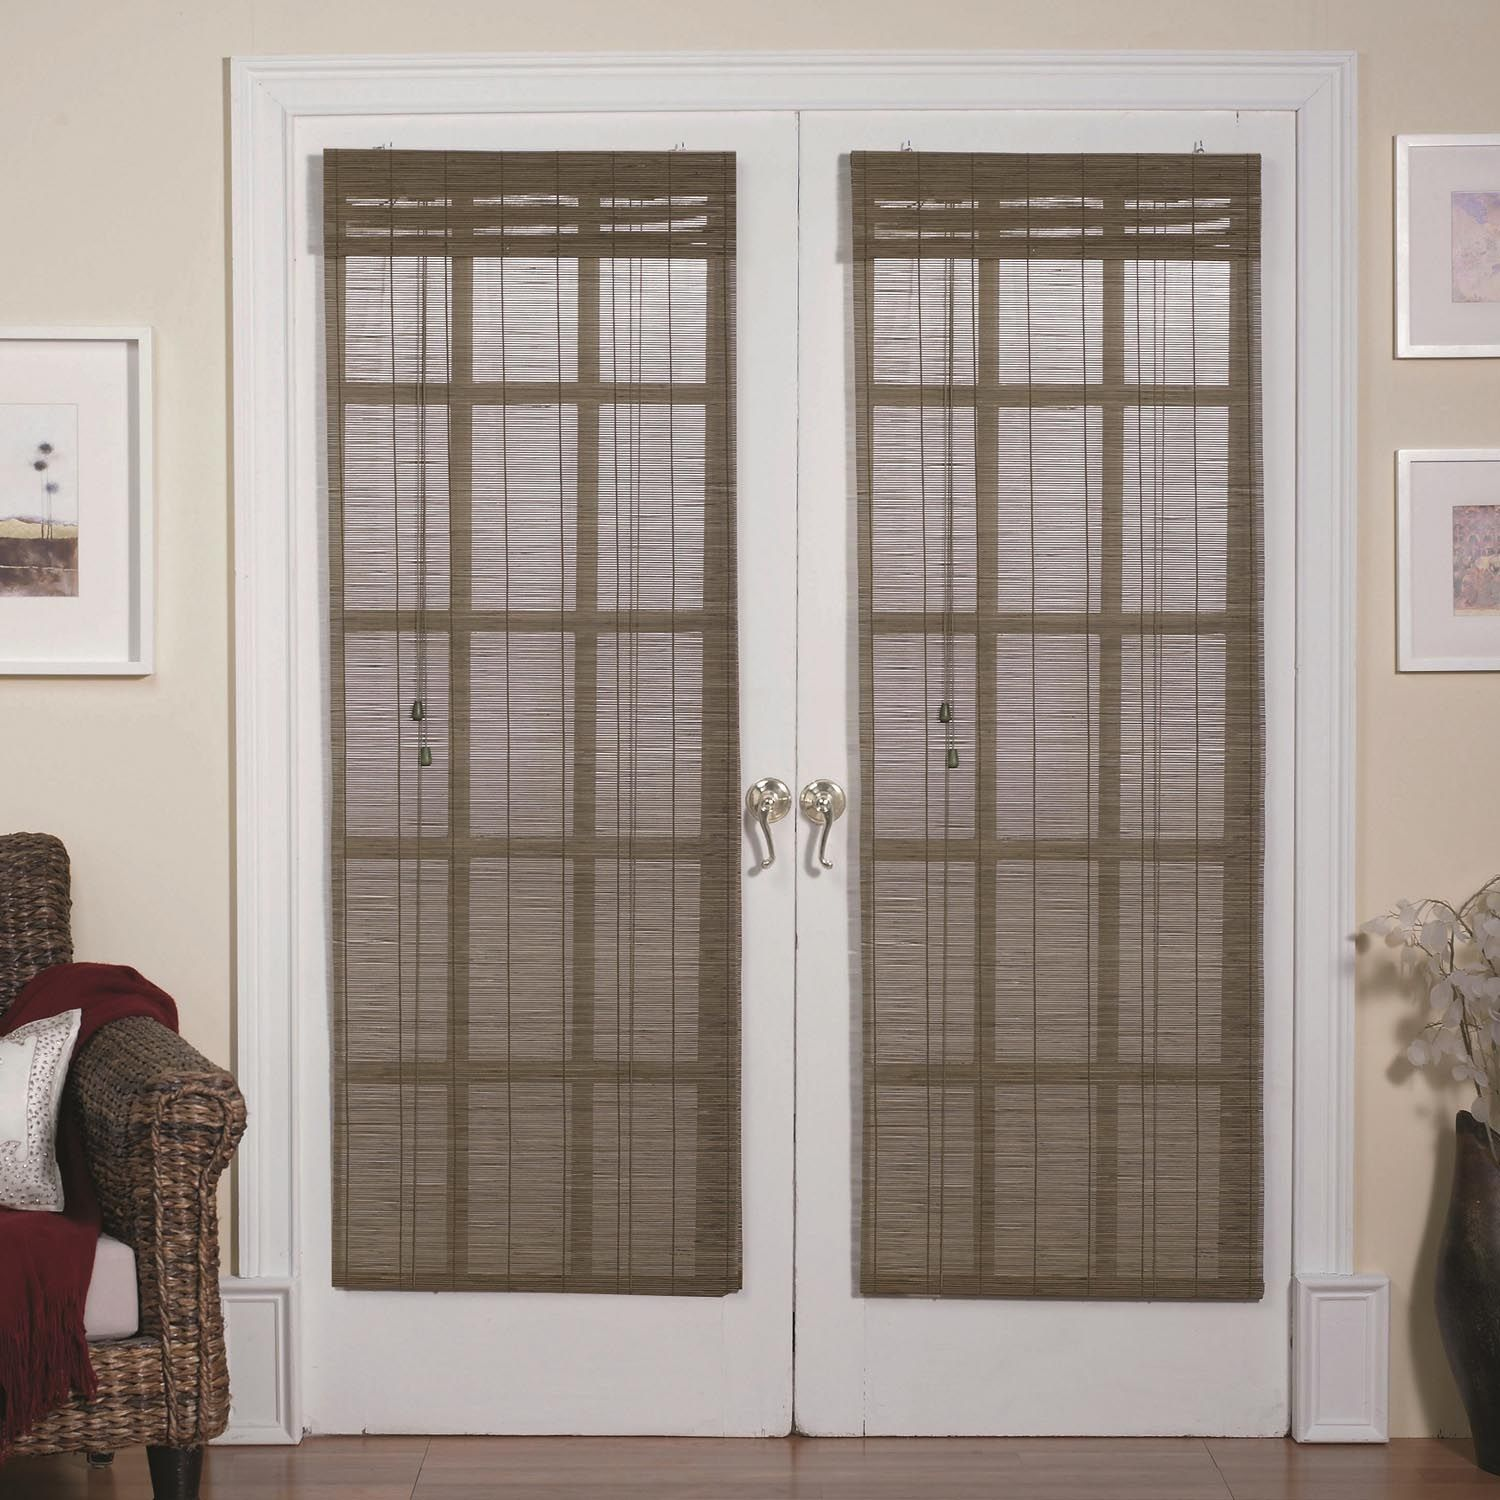 Screen Covers For French Doors